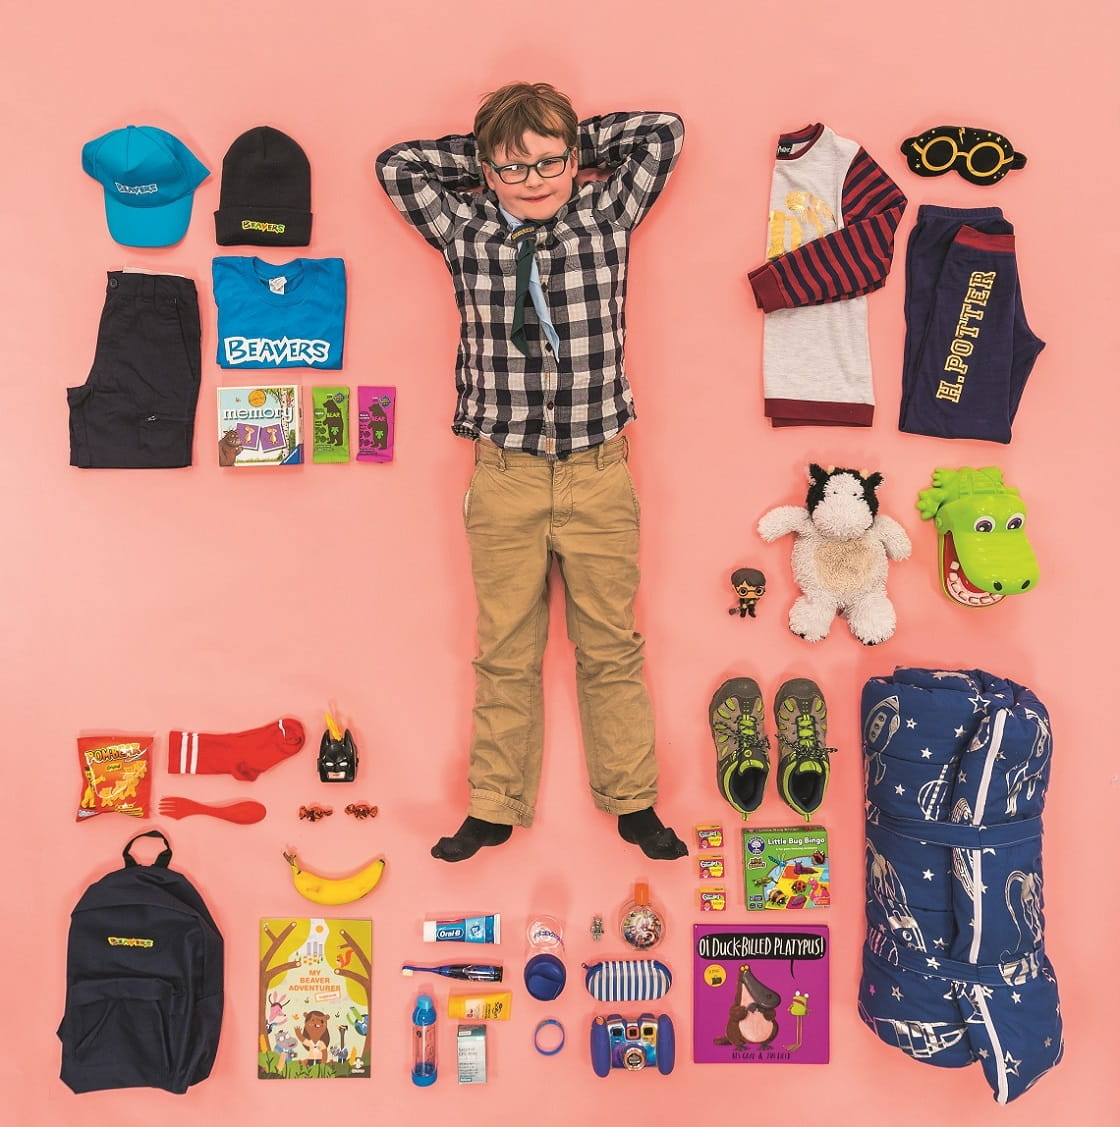 Dylan, a Beaver Scout, with all of his favourite things he takes on camp